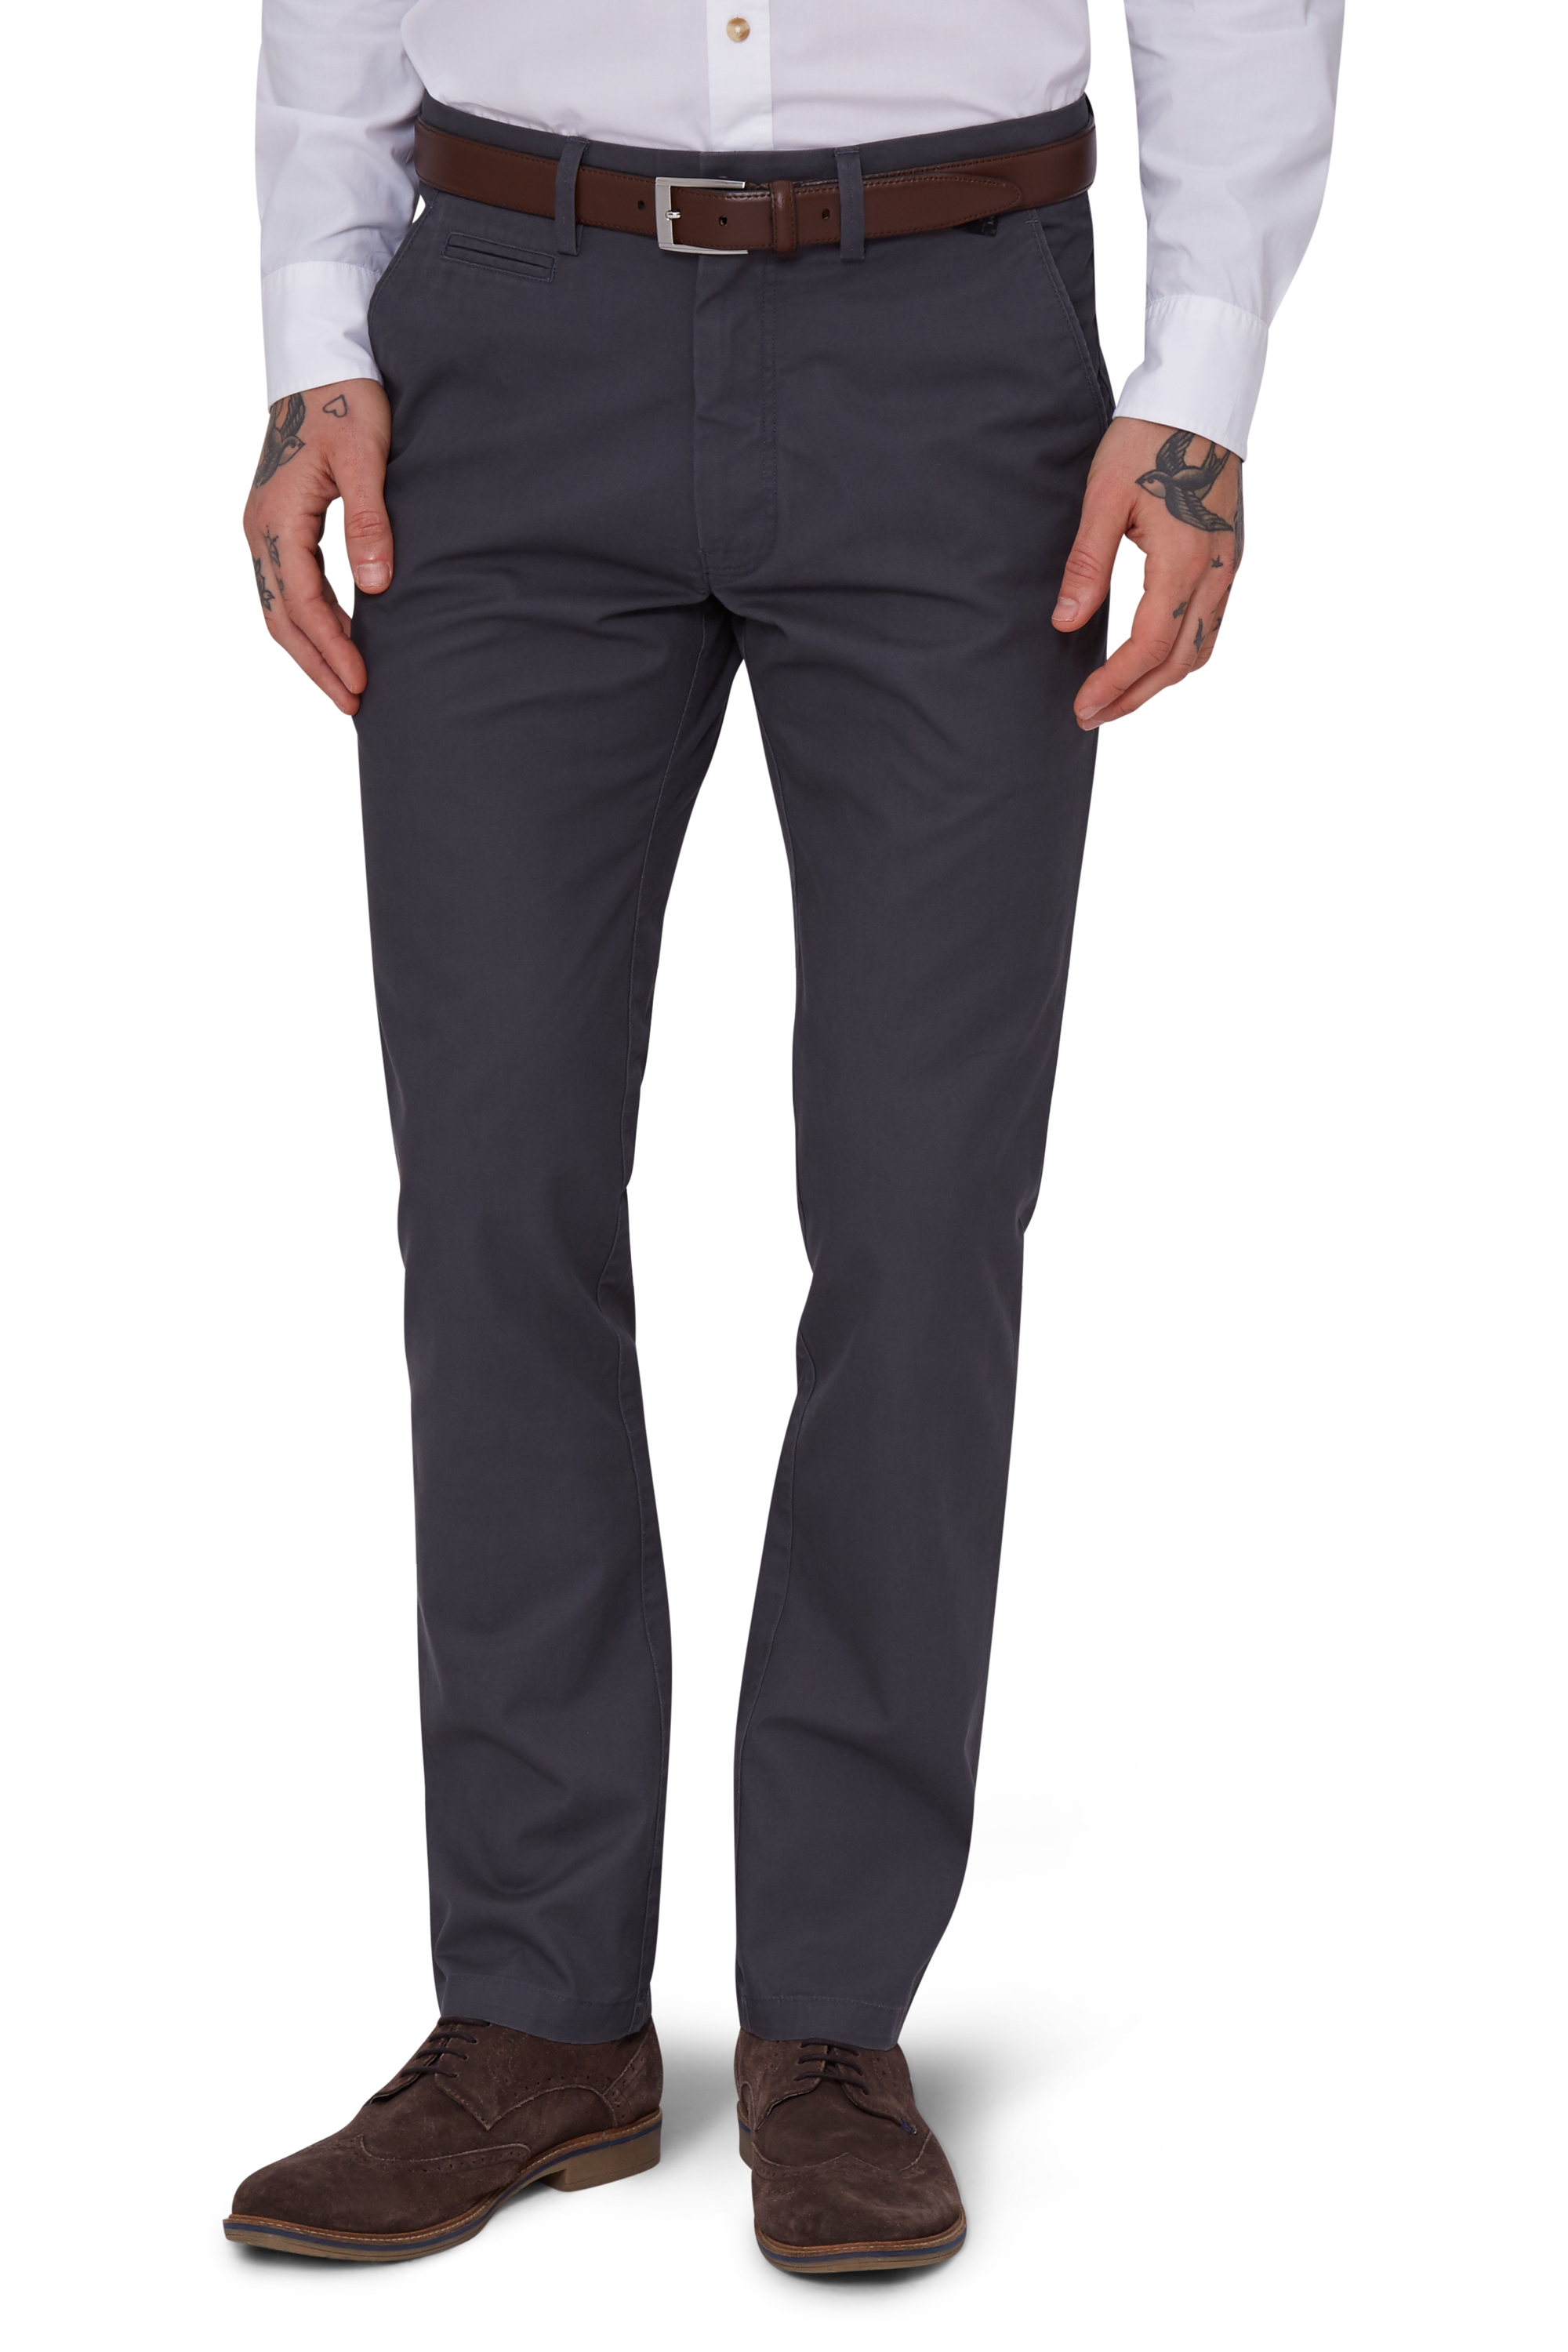 Moss 1851 Mens Slate Grey Chinos Tailored Fit Cotton Trousers ...